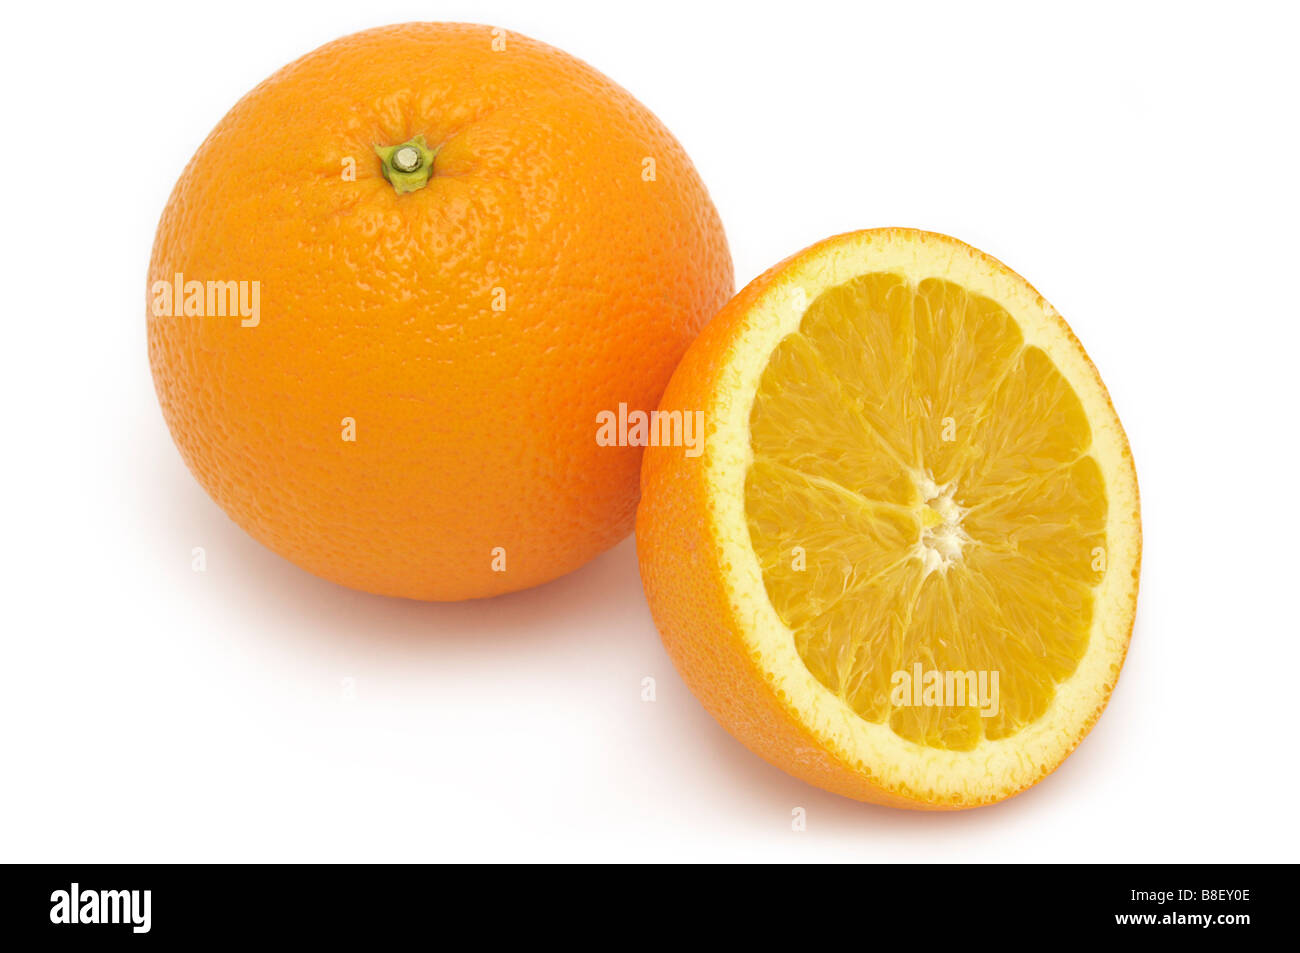 Whole Orange and Half Orange - Stock Image